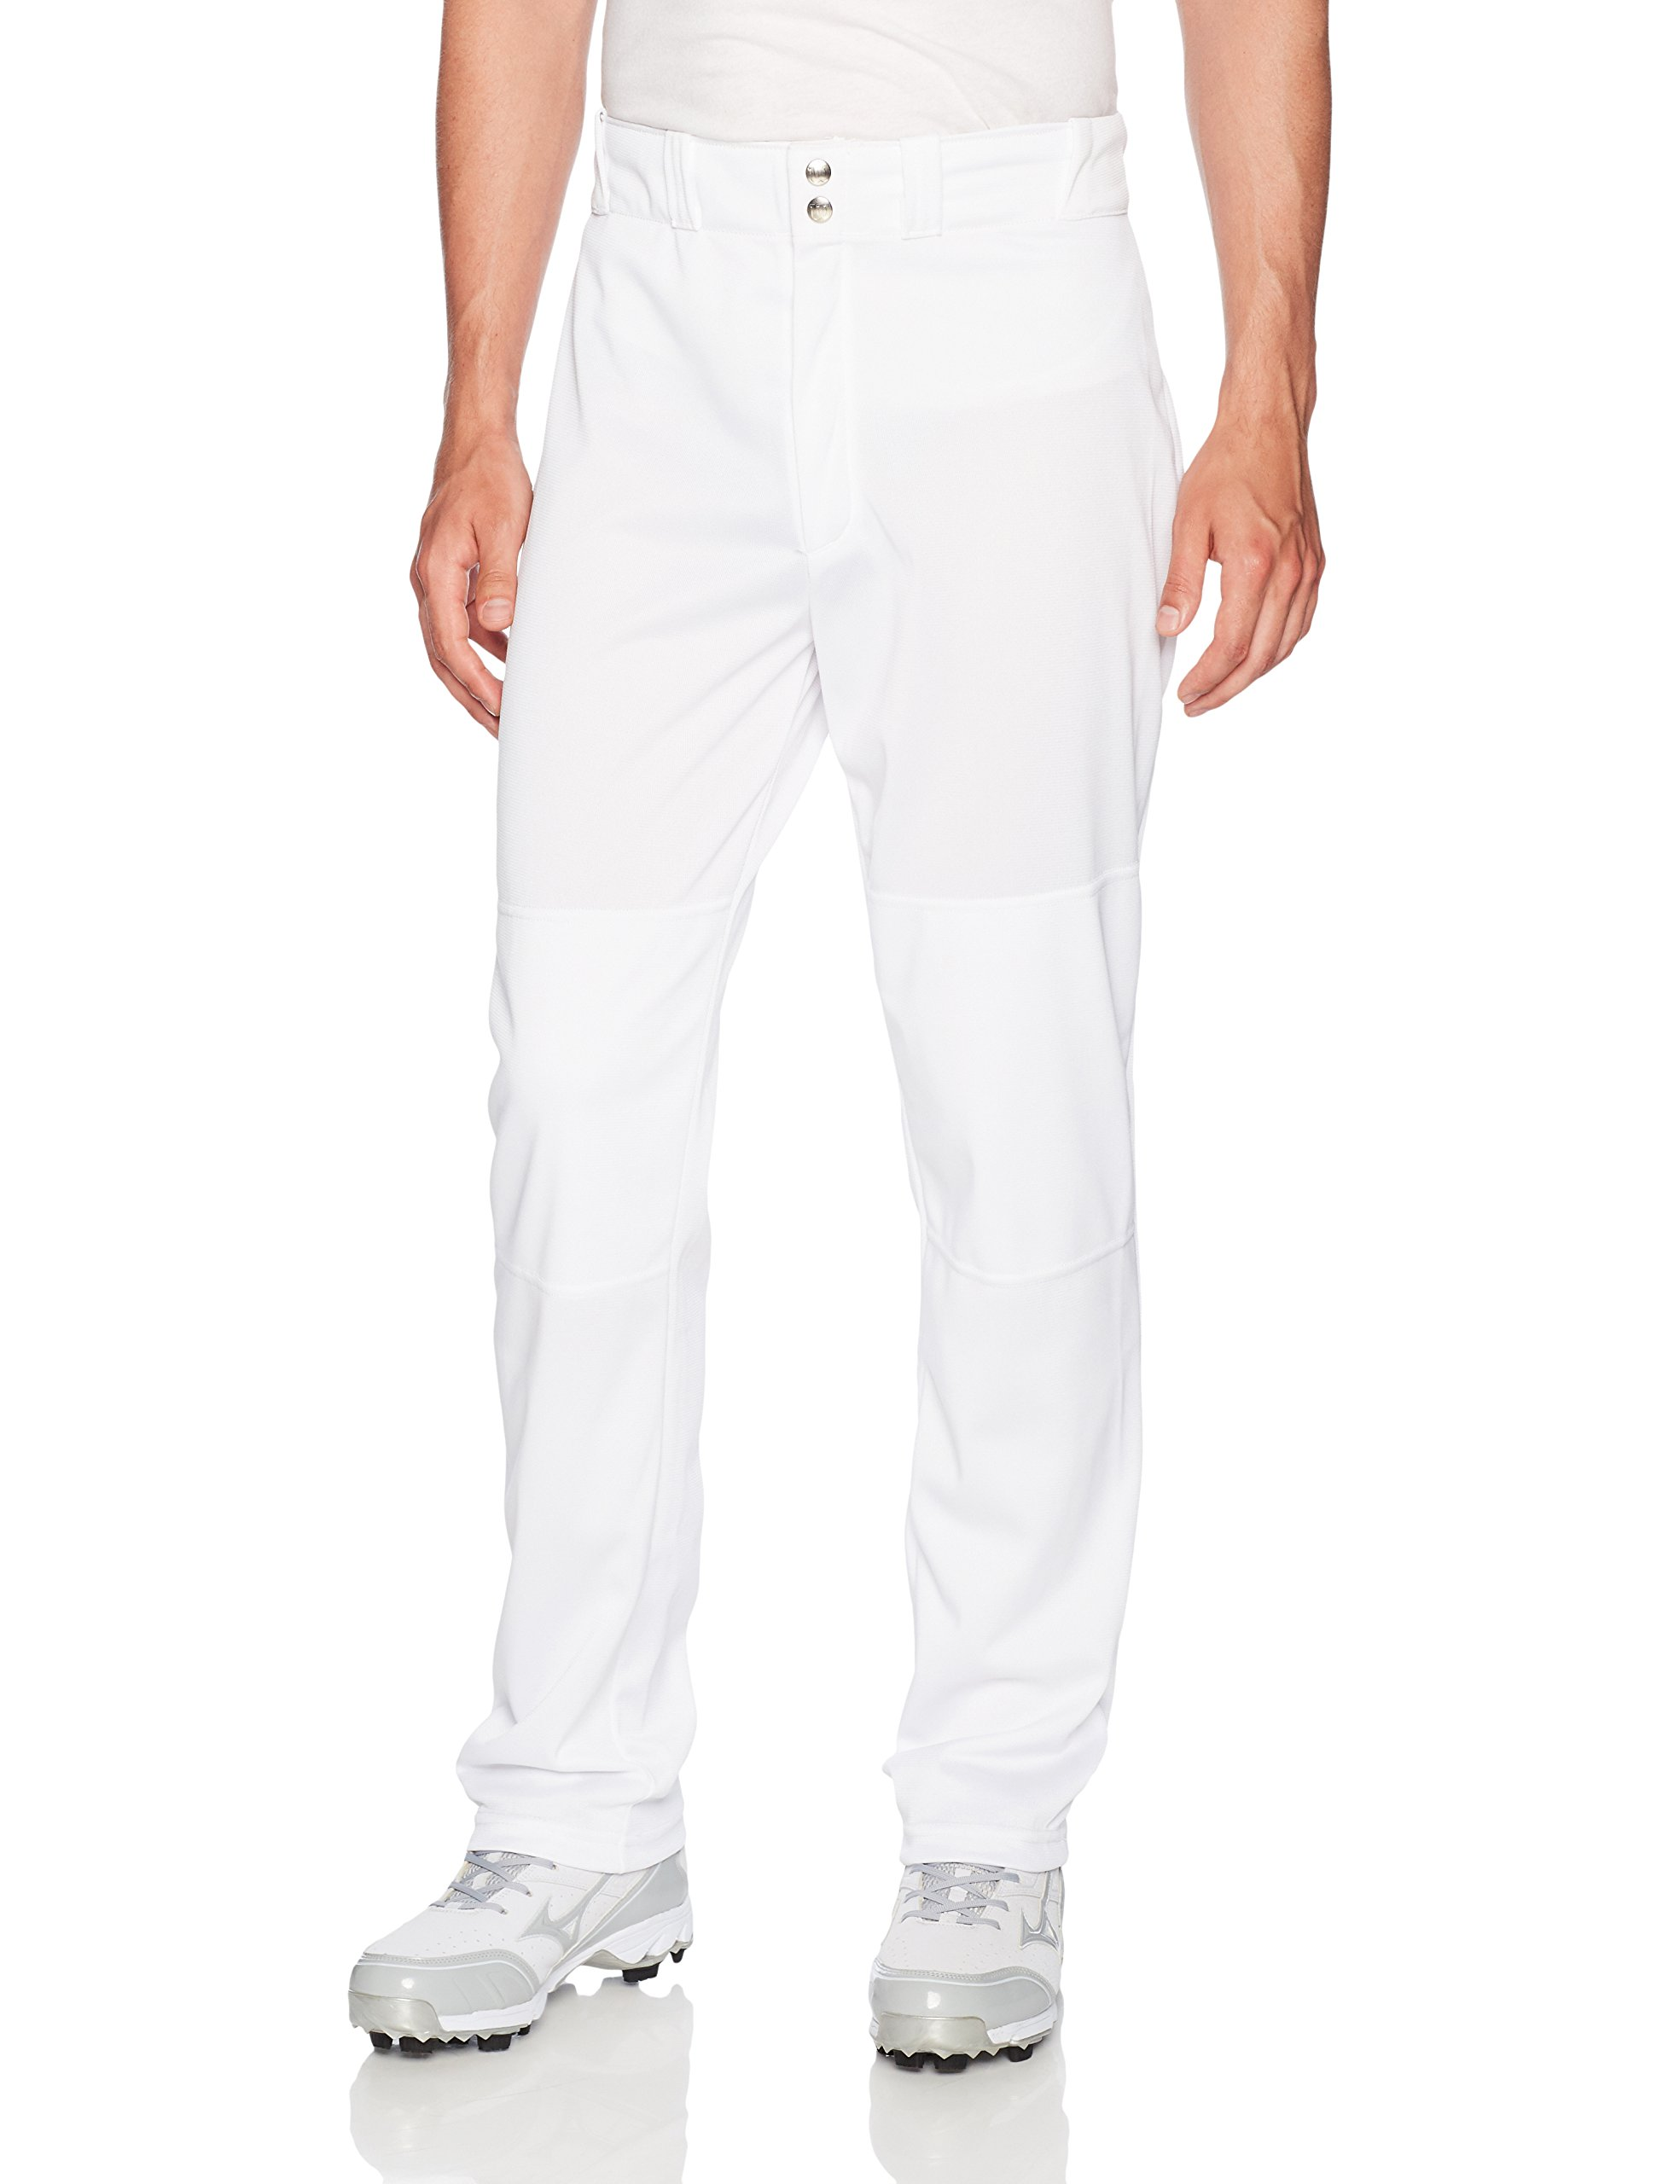 Wilson Men's Classic Relaxed Fit Baseball Pant, White, Medium by Wilson